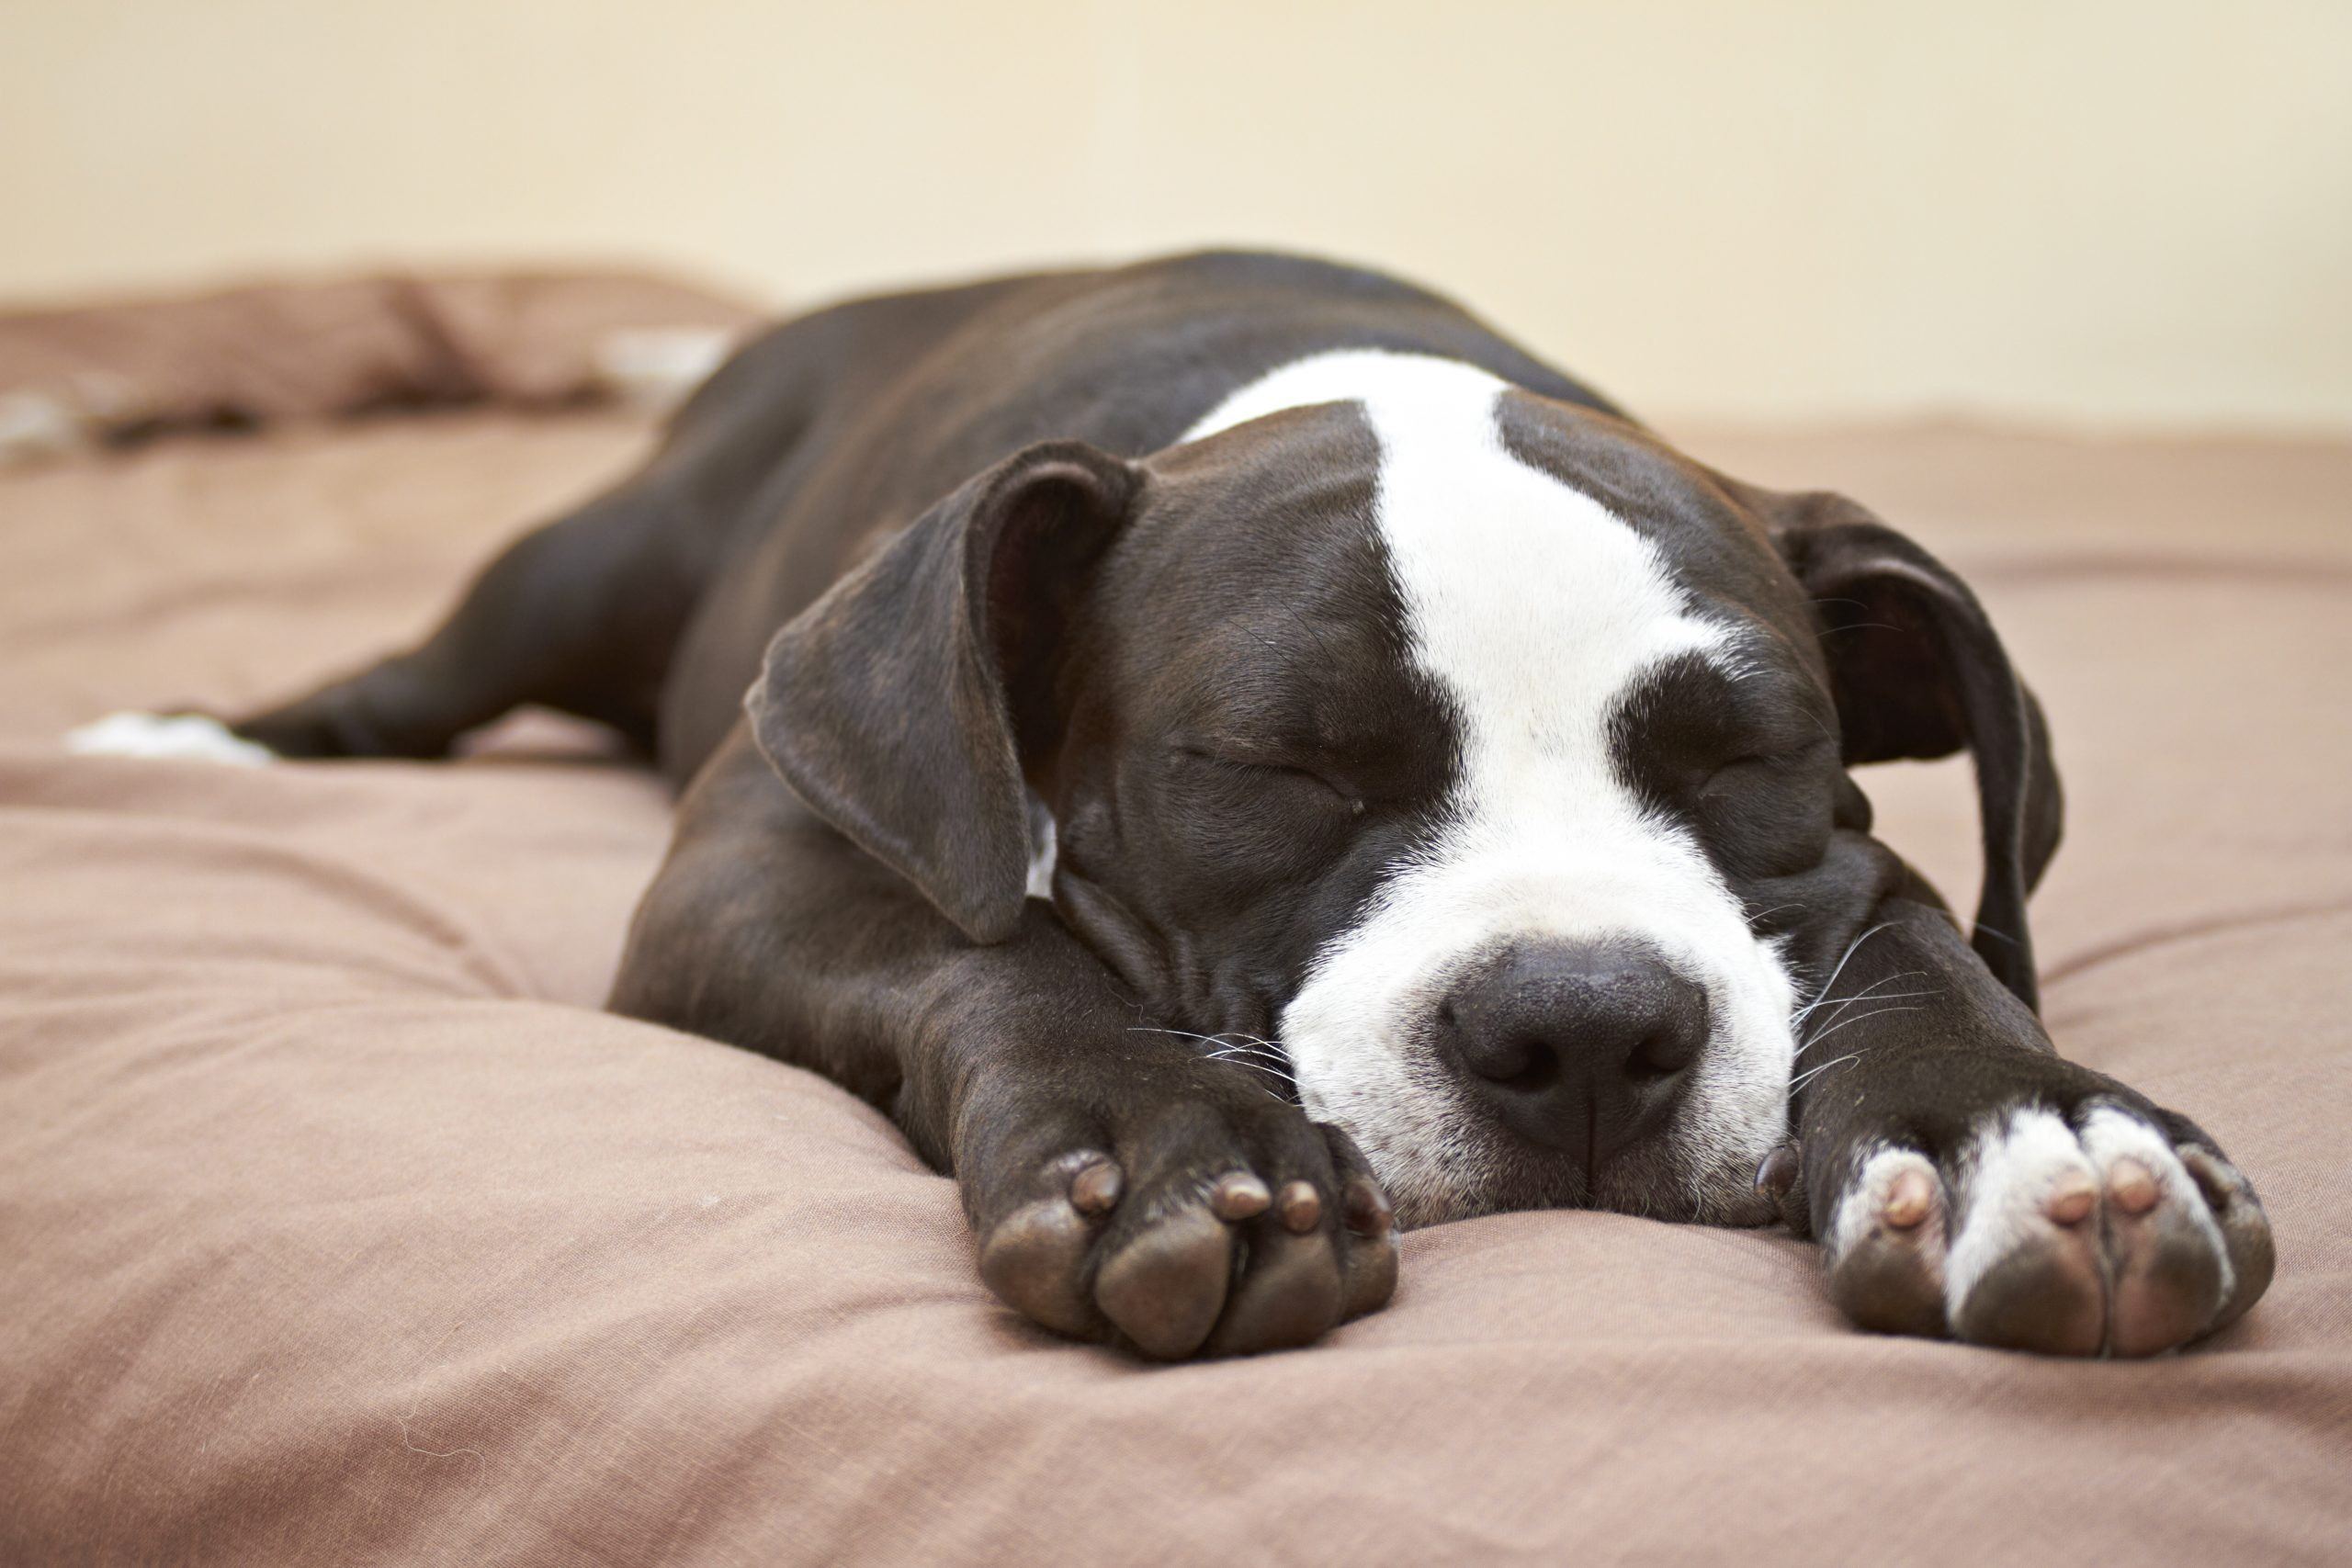 The Drawbacks of Dogs in the Bed